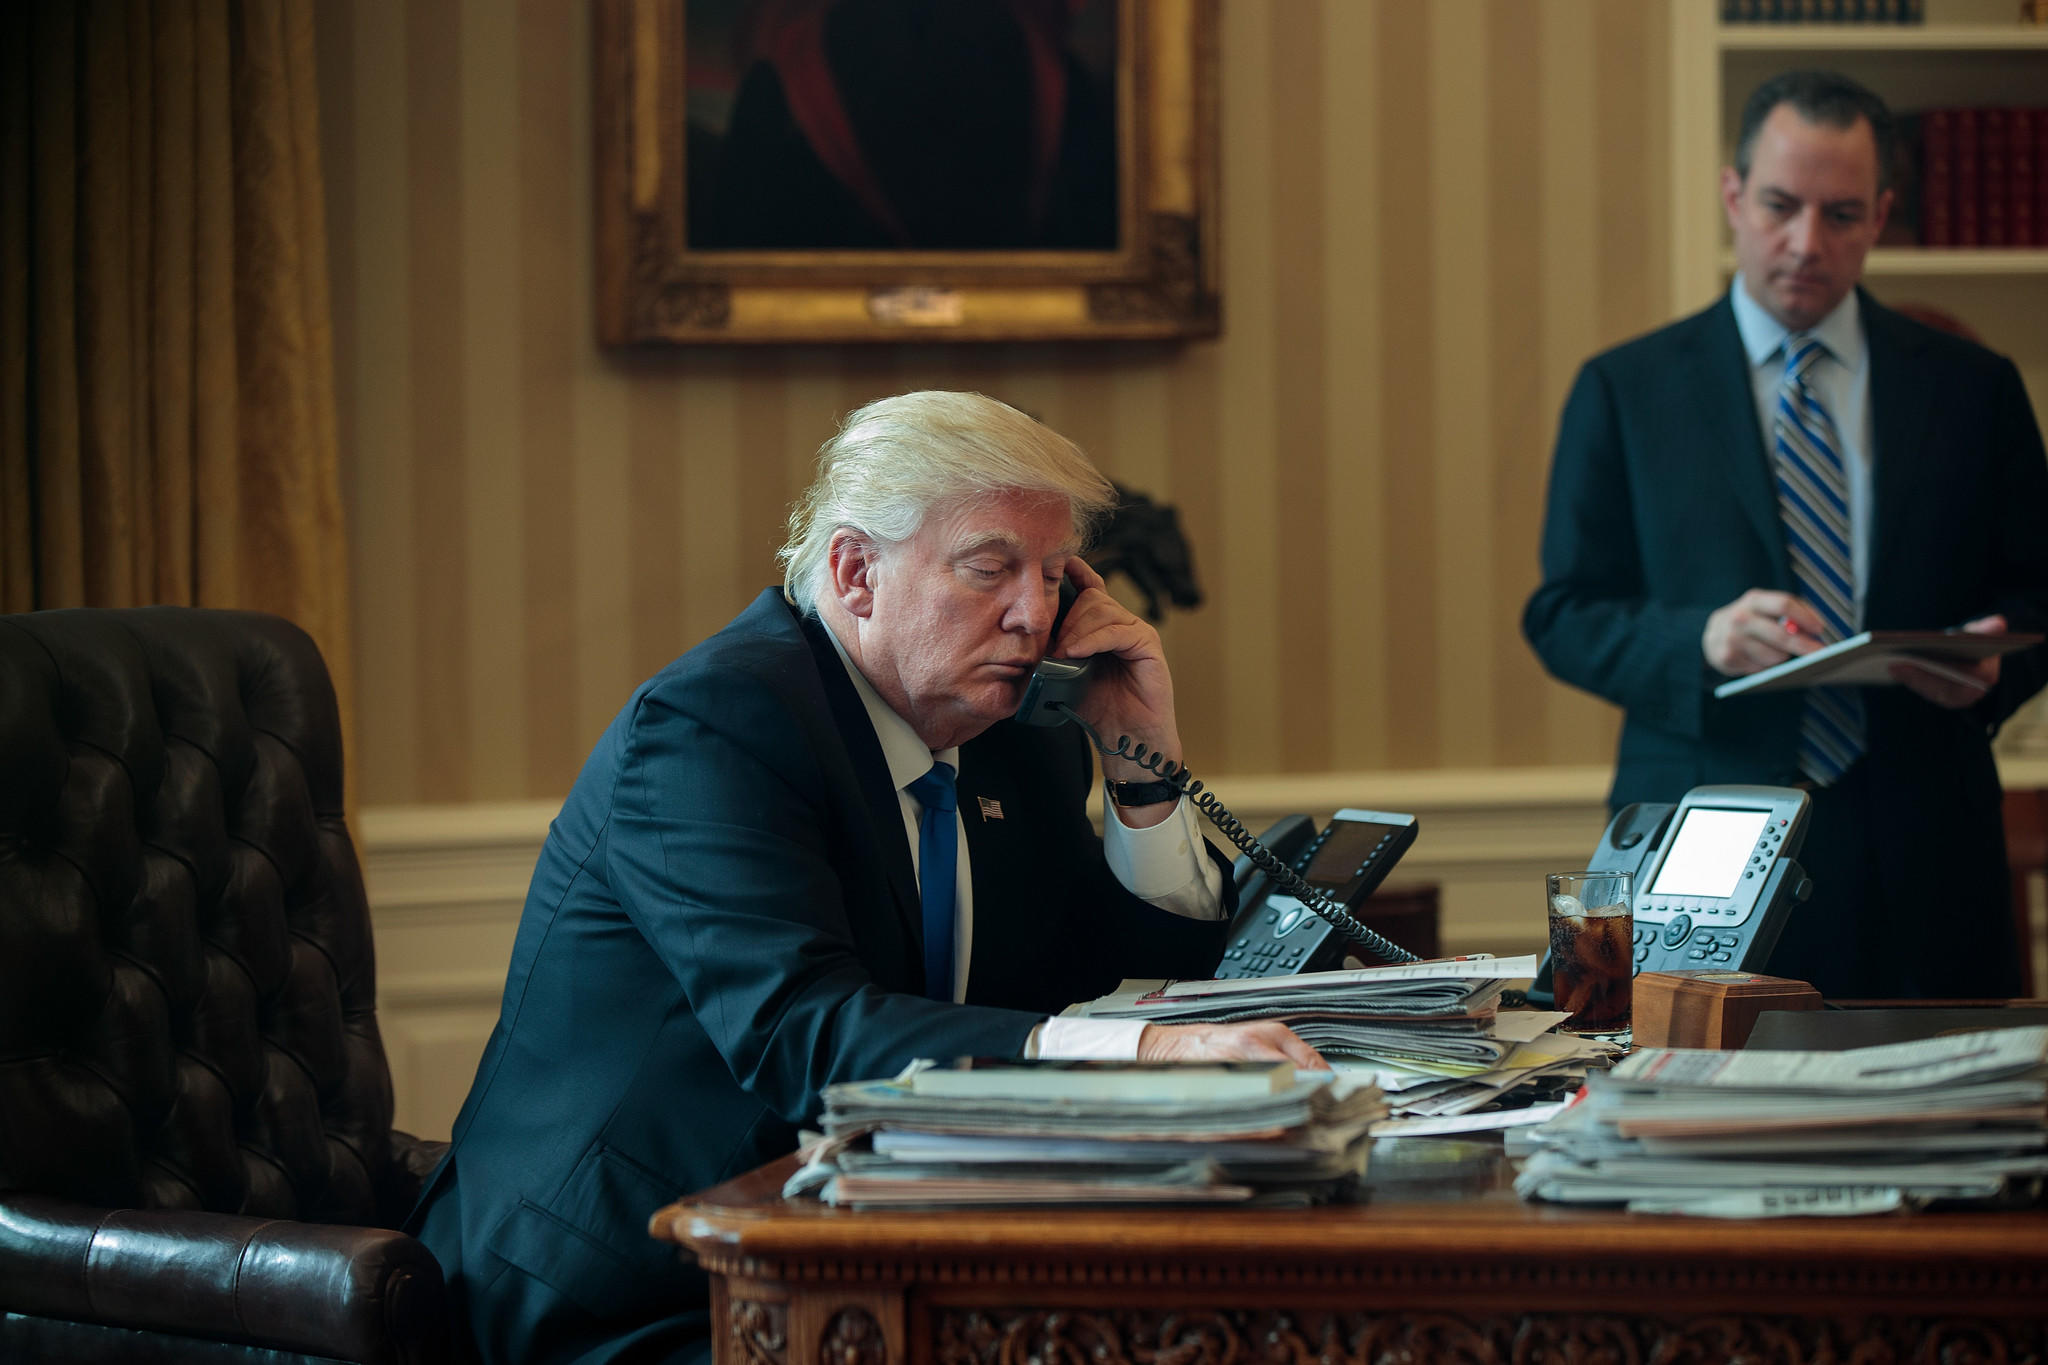 Trump speaks by phone with Putin as White House Chief of Staff Reince Priebus looks on.